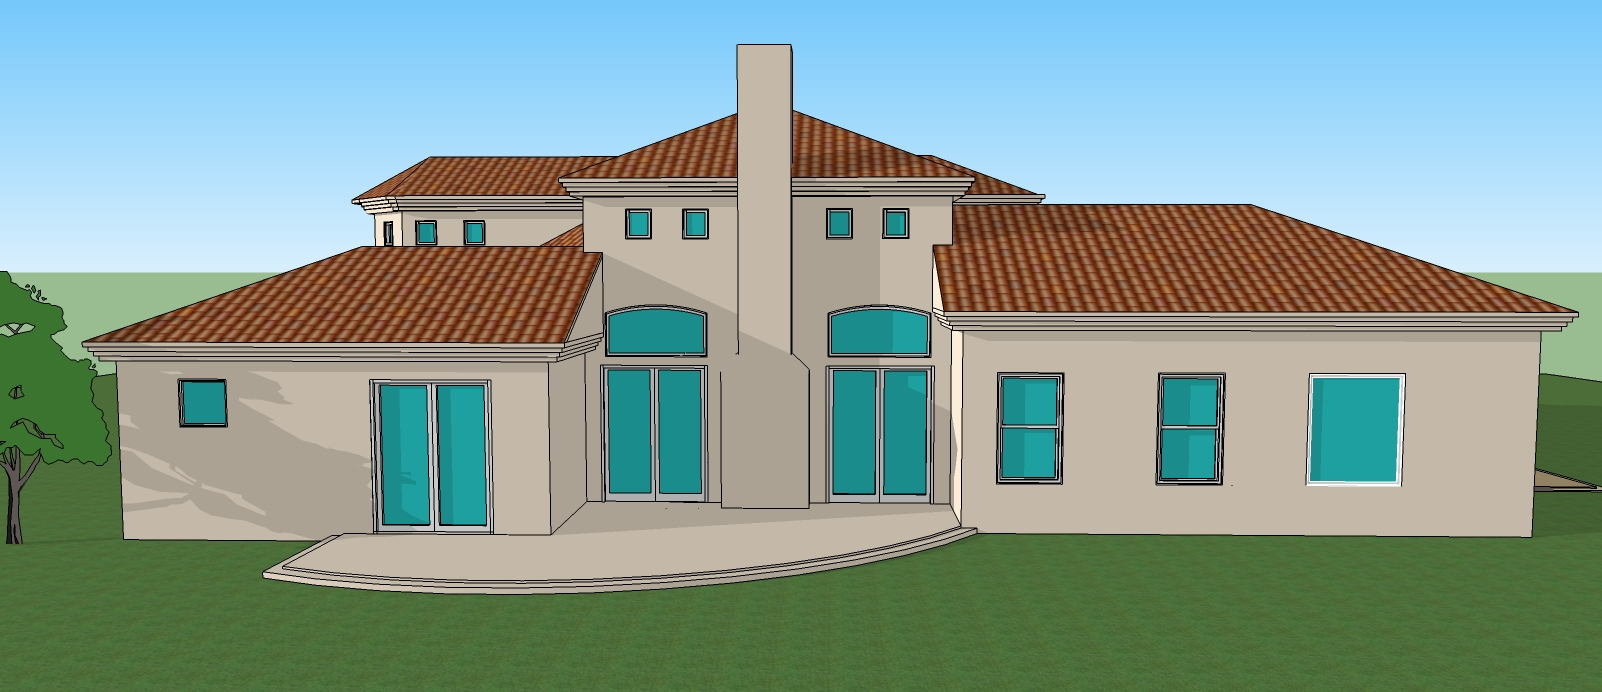 3D CAD House Plans Architect Design Sioux City Iowa Waterloo Kenosha Wisconsin Racine Pasadena Grand Prairie Texas McKinney McAllen